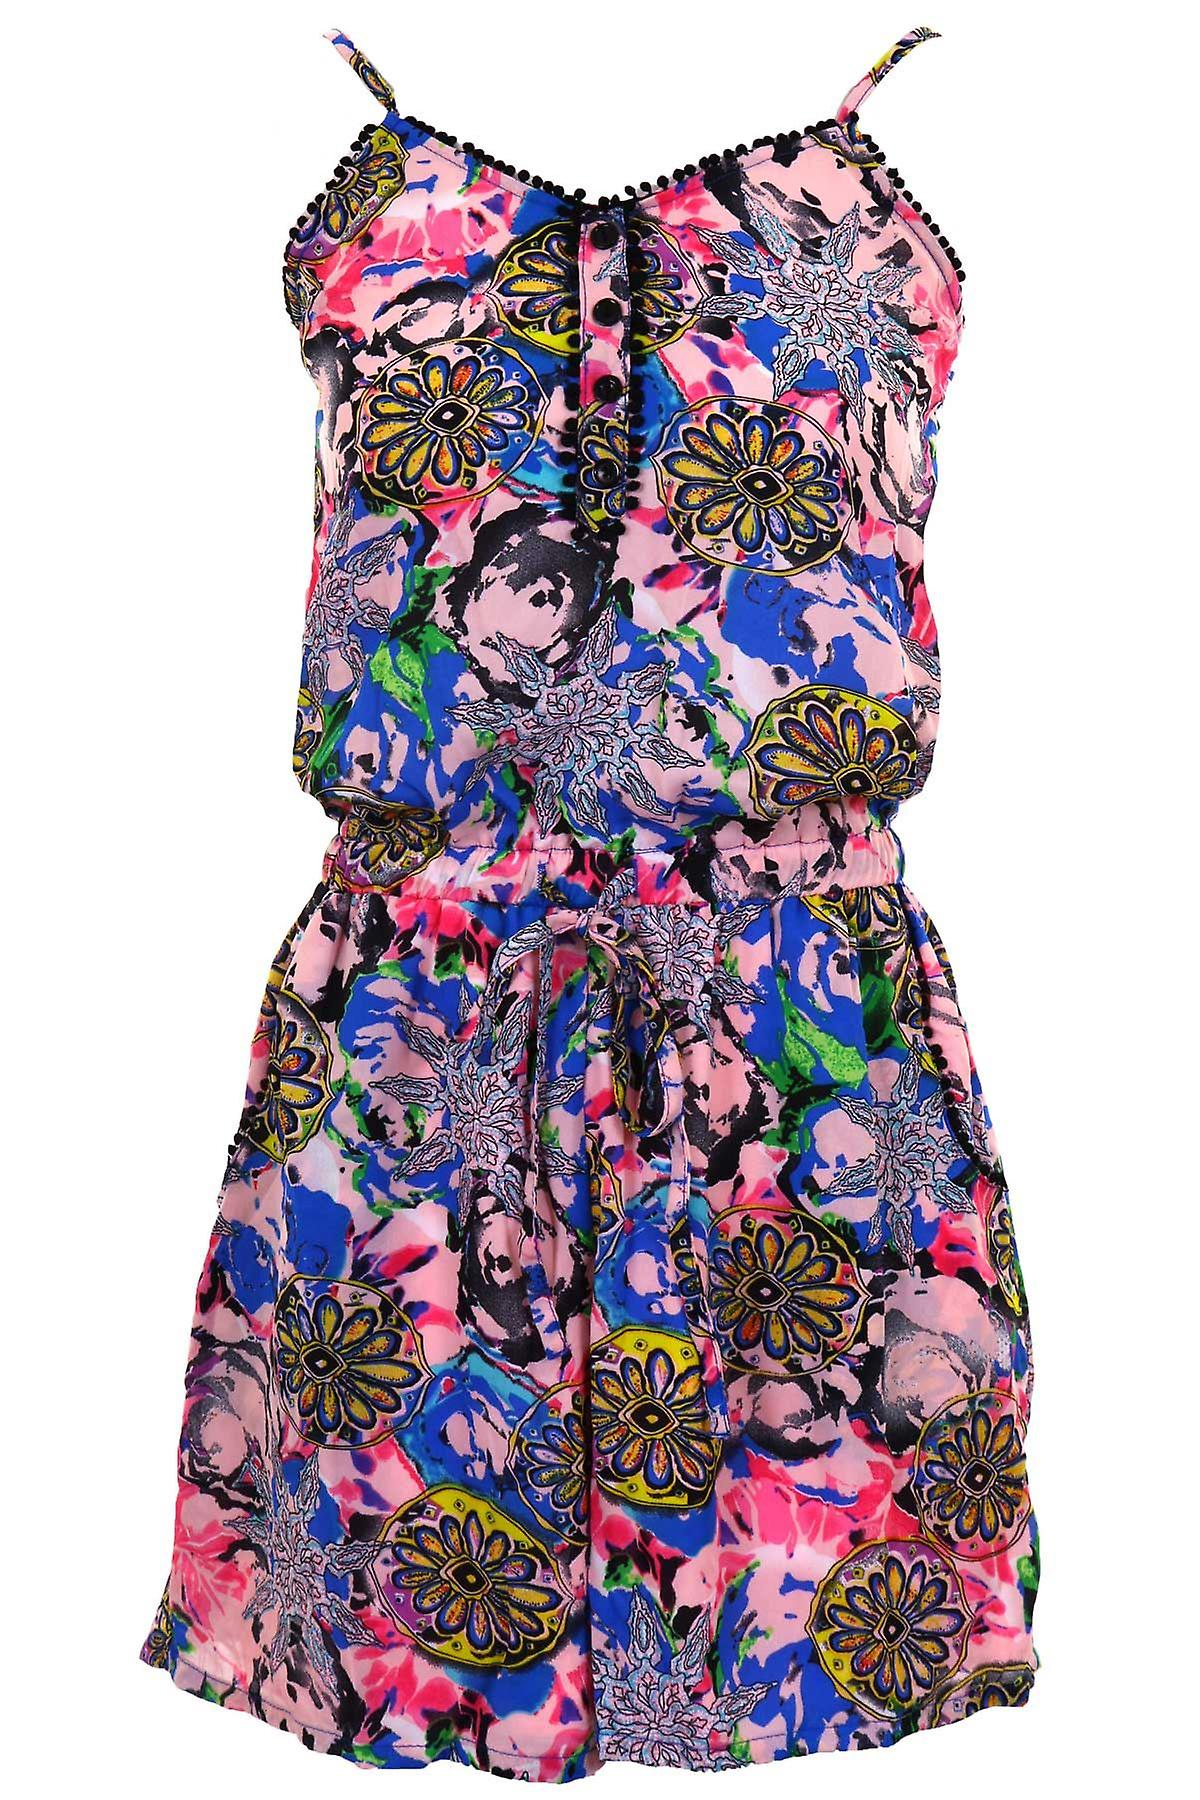 Ladies Strappy Chiffon Lined Floral Elasticated Waist Camisole Women's Playsuit